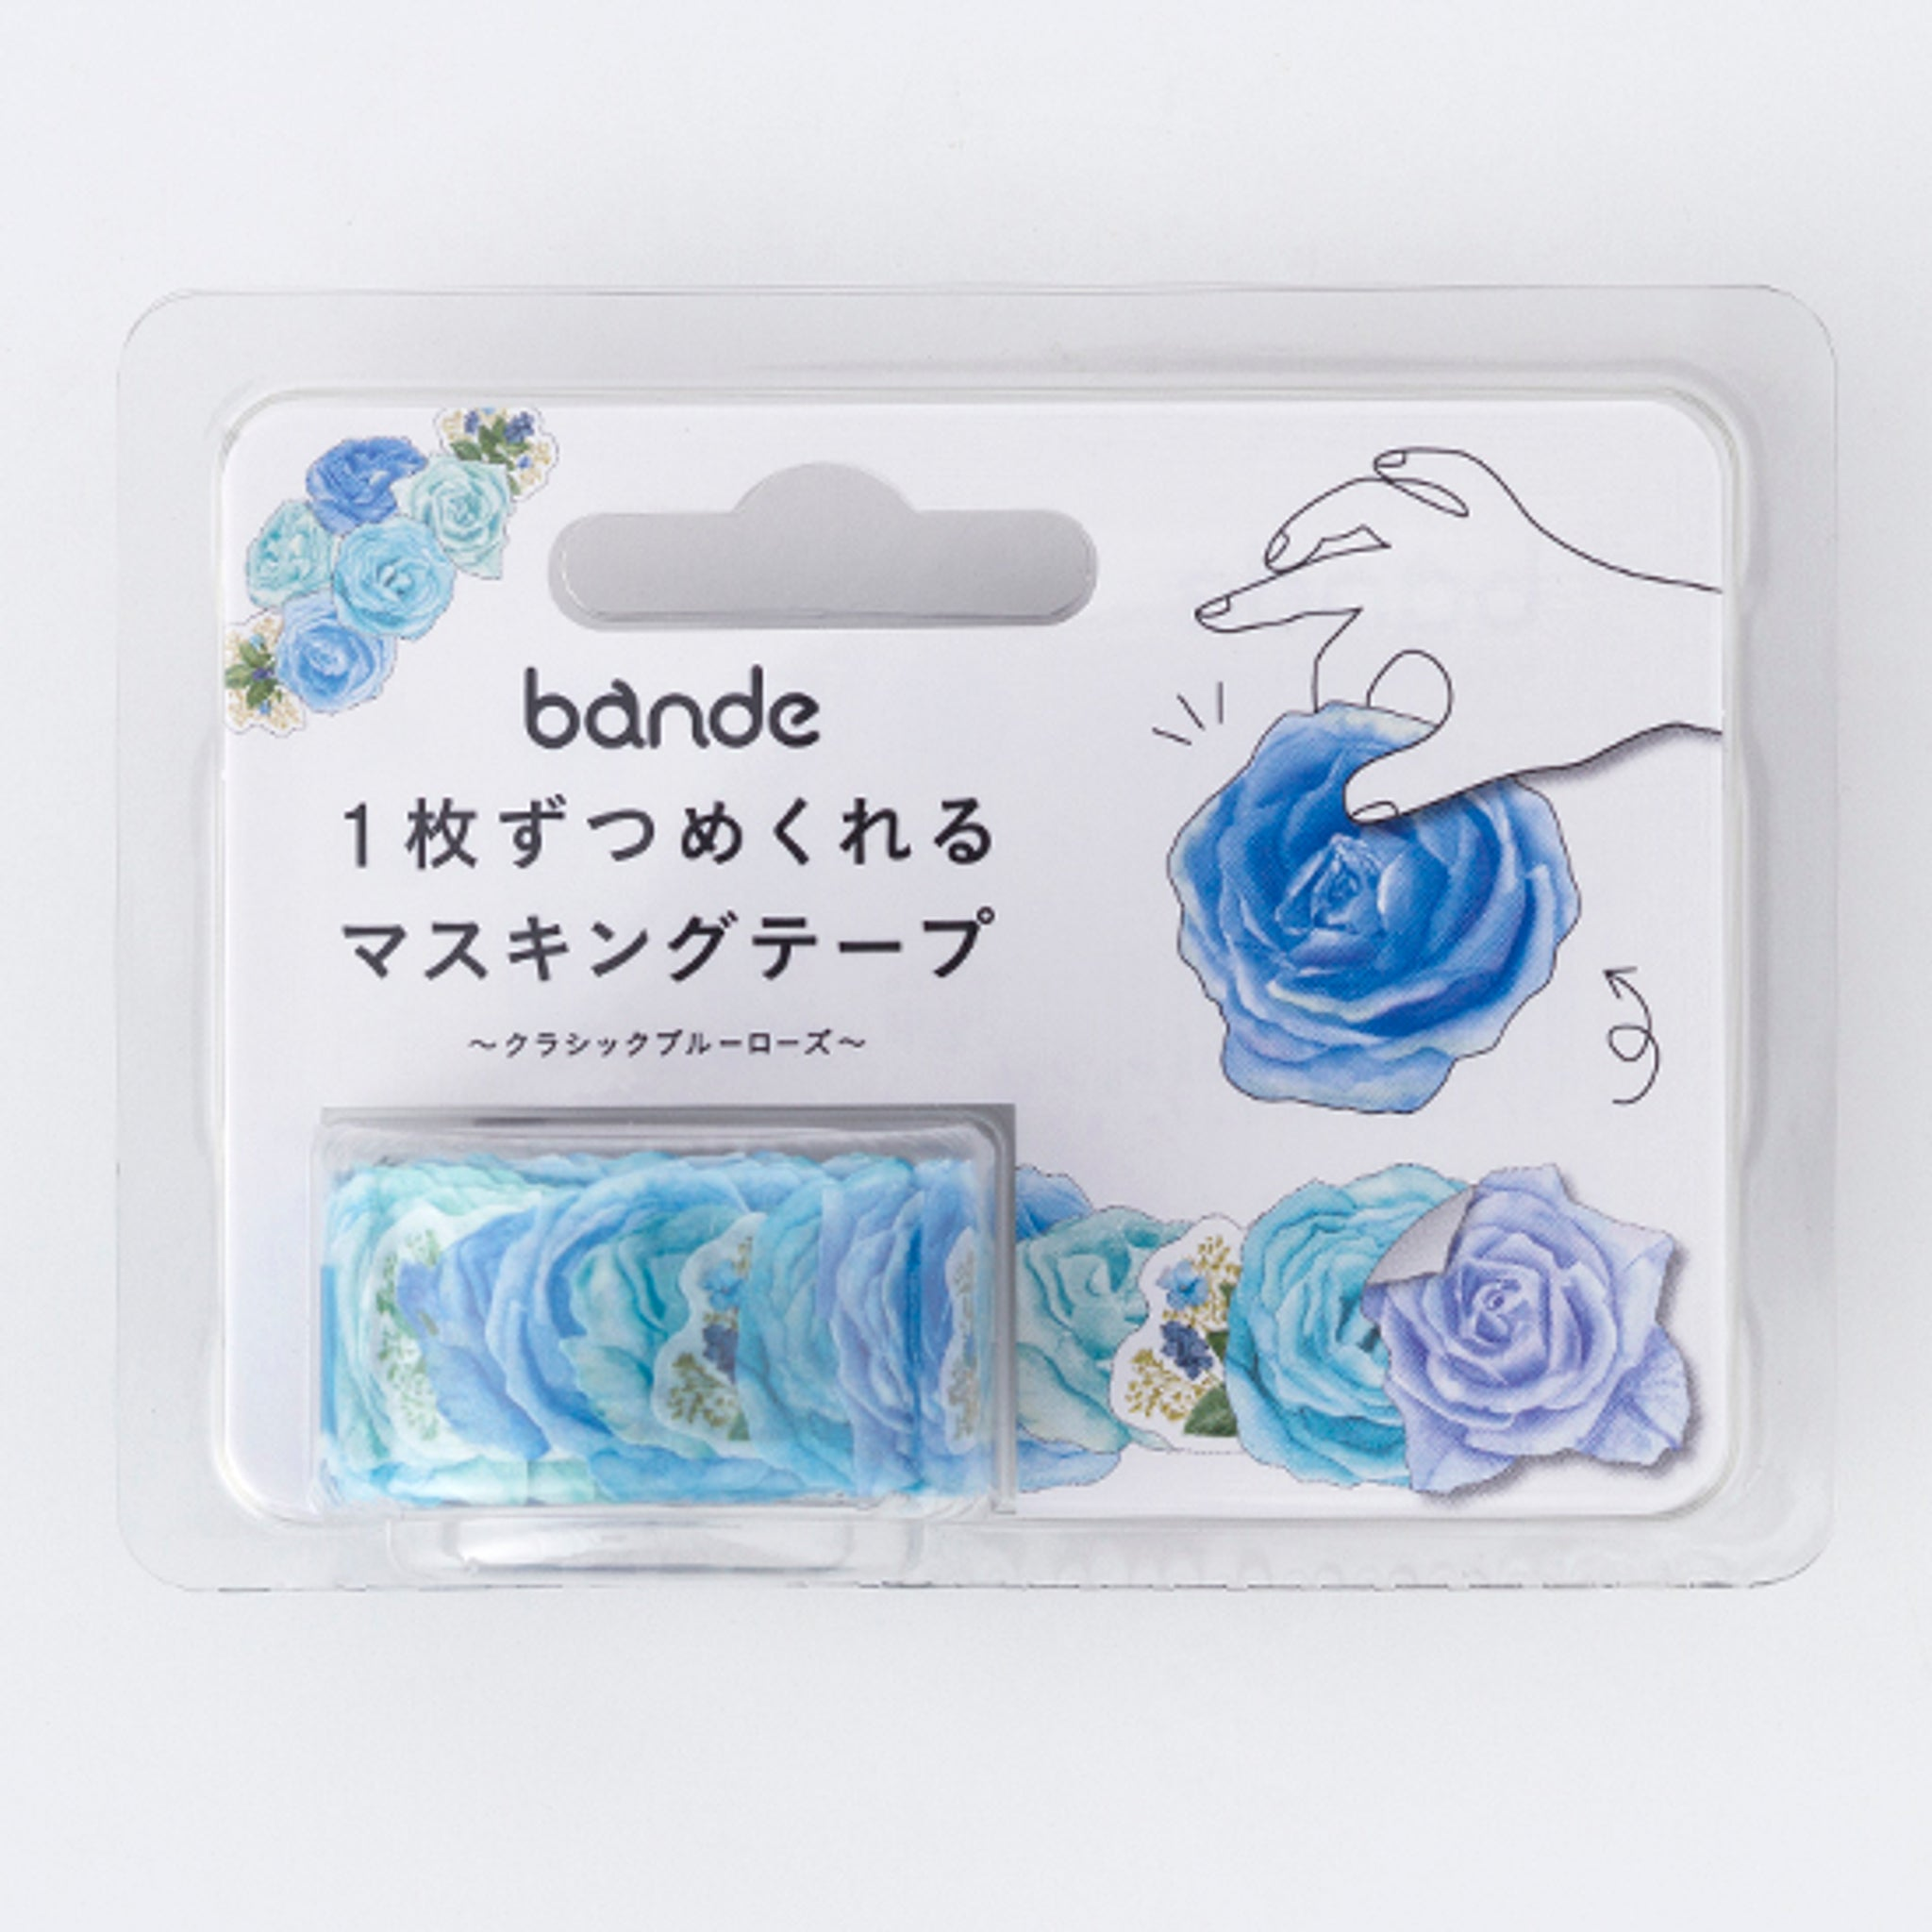 Bande Blue Rose Washi Roll Sticker